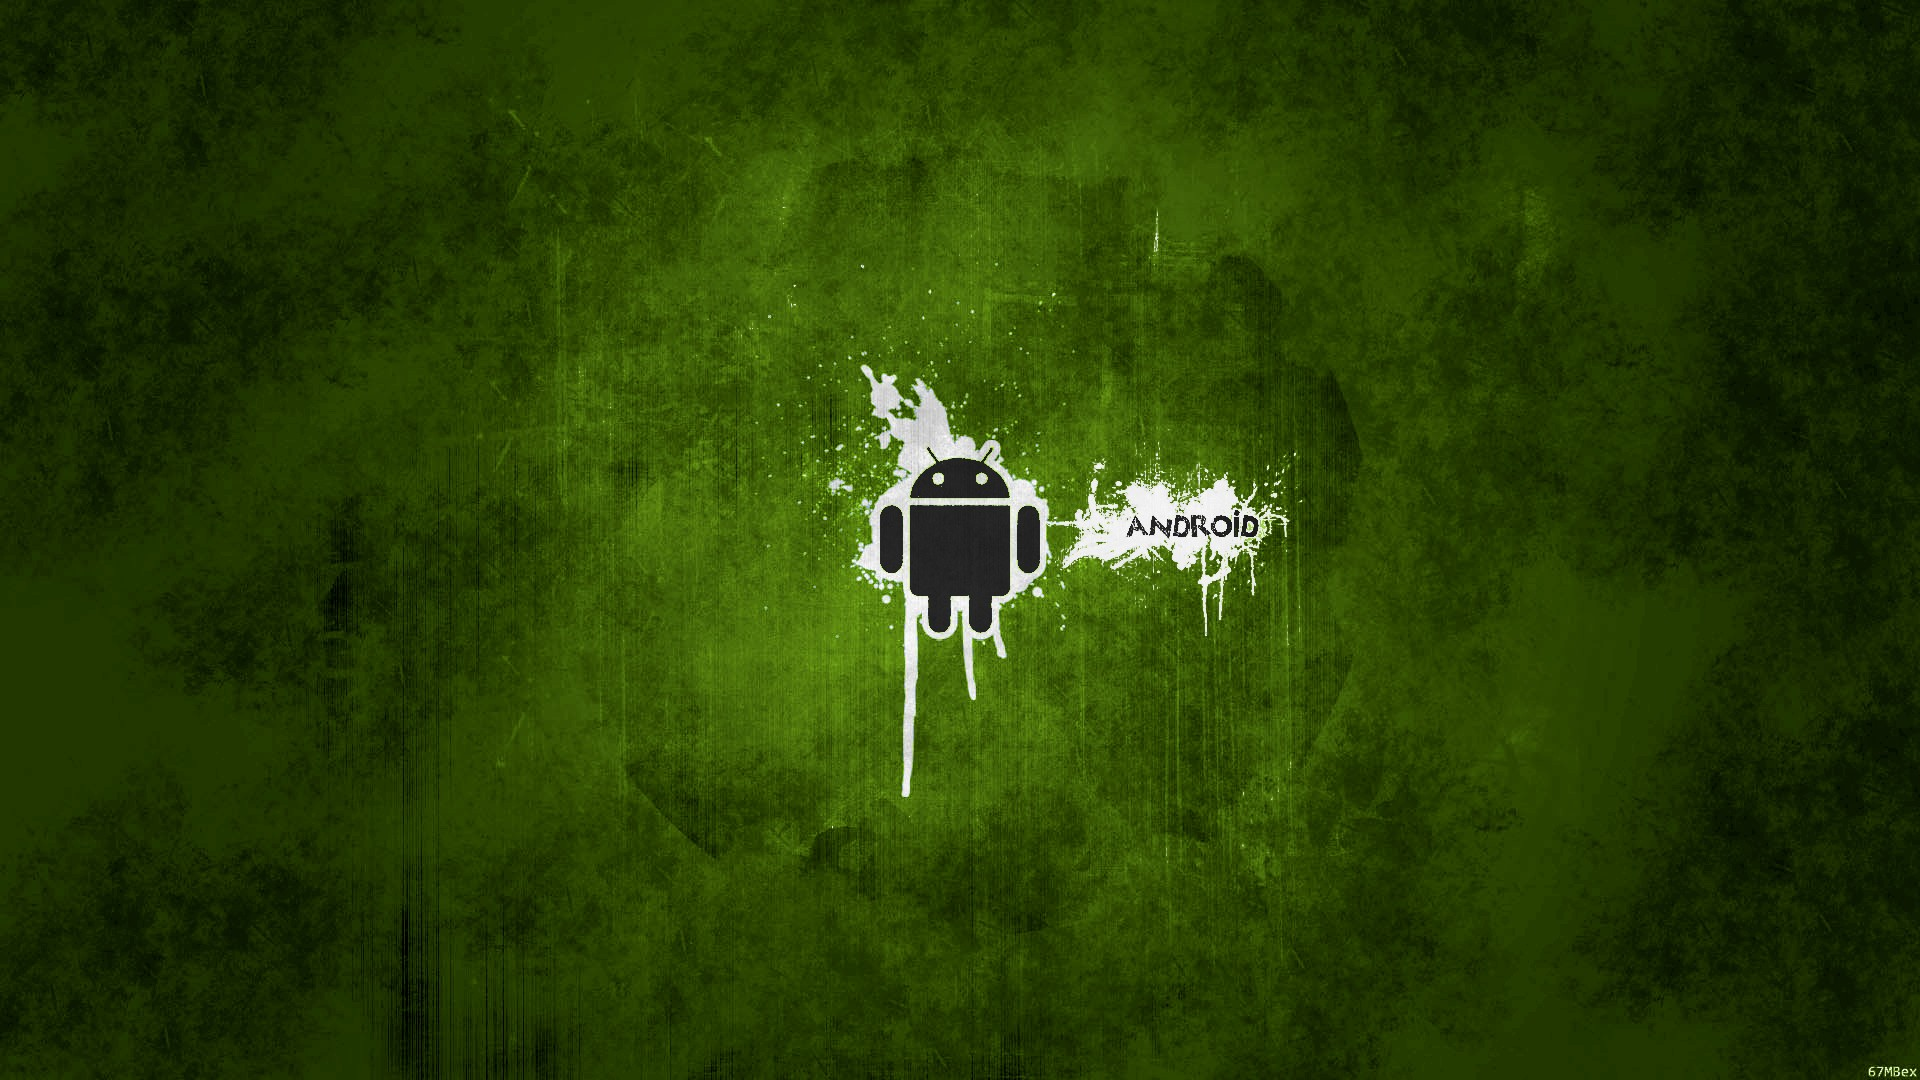 Android HD Wallpapers For Mobile Group (71+)